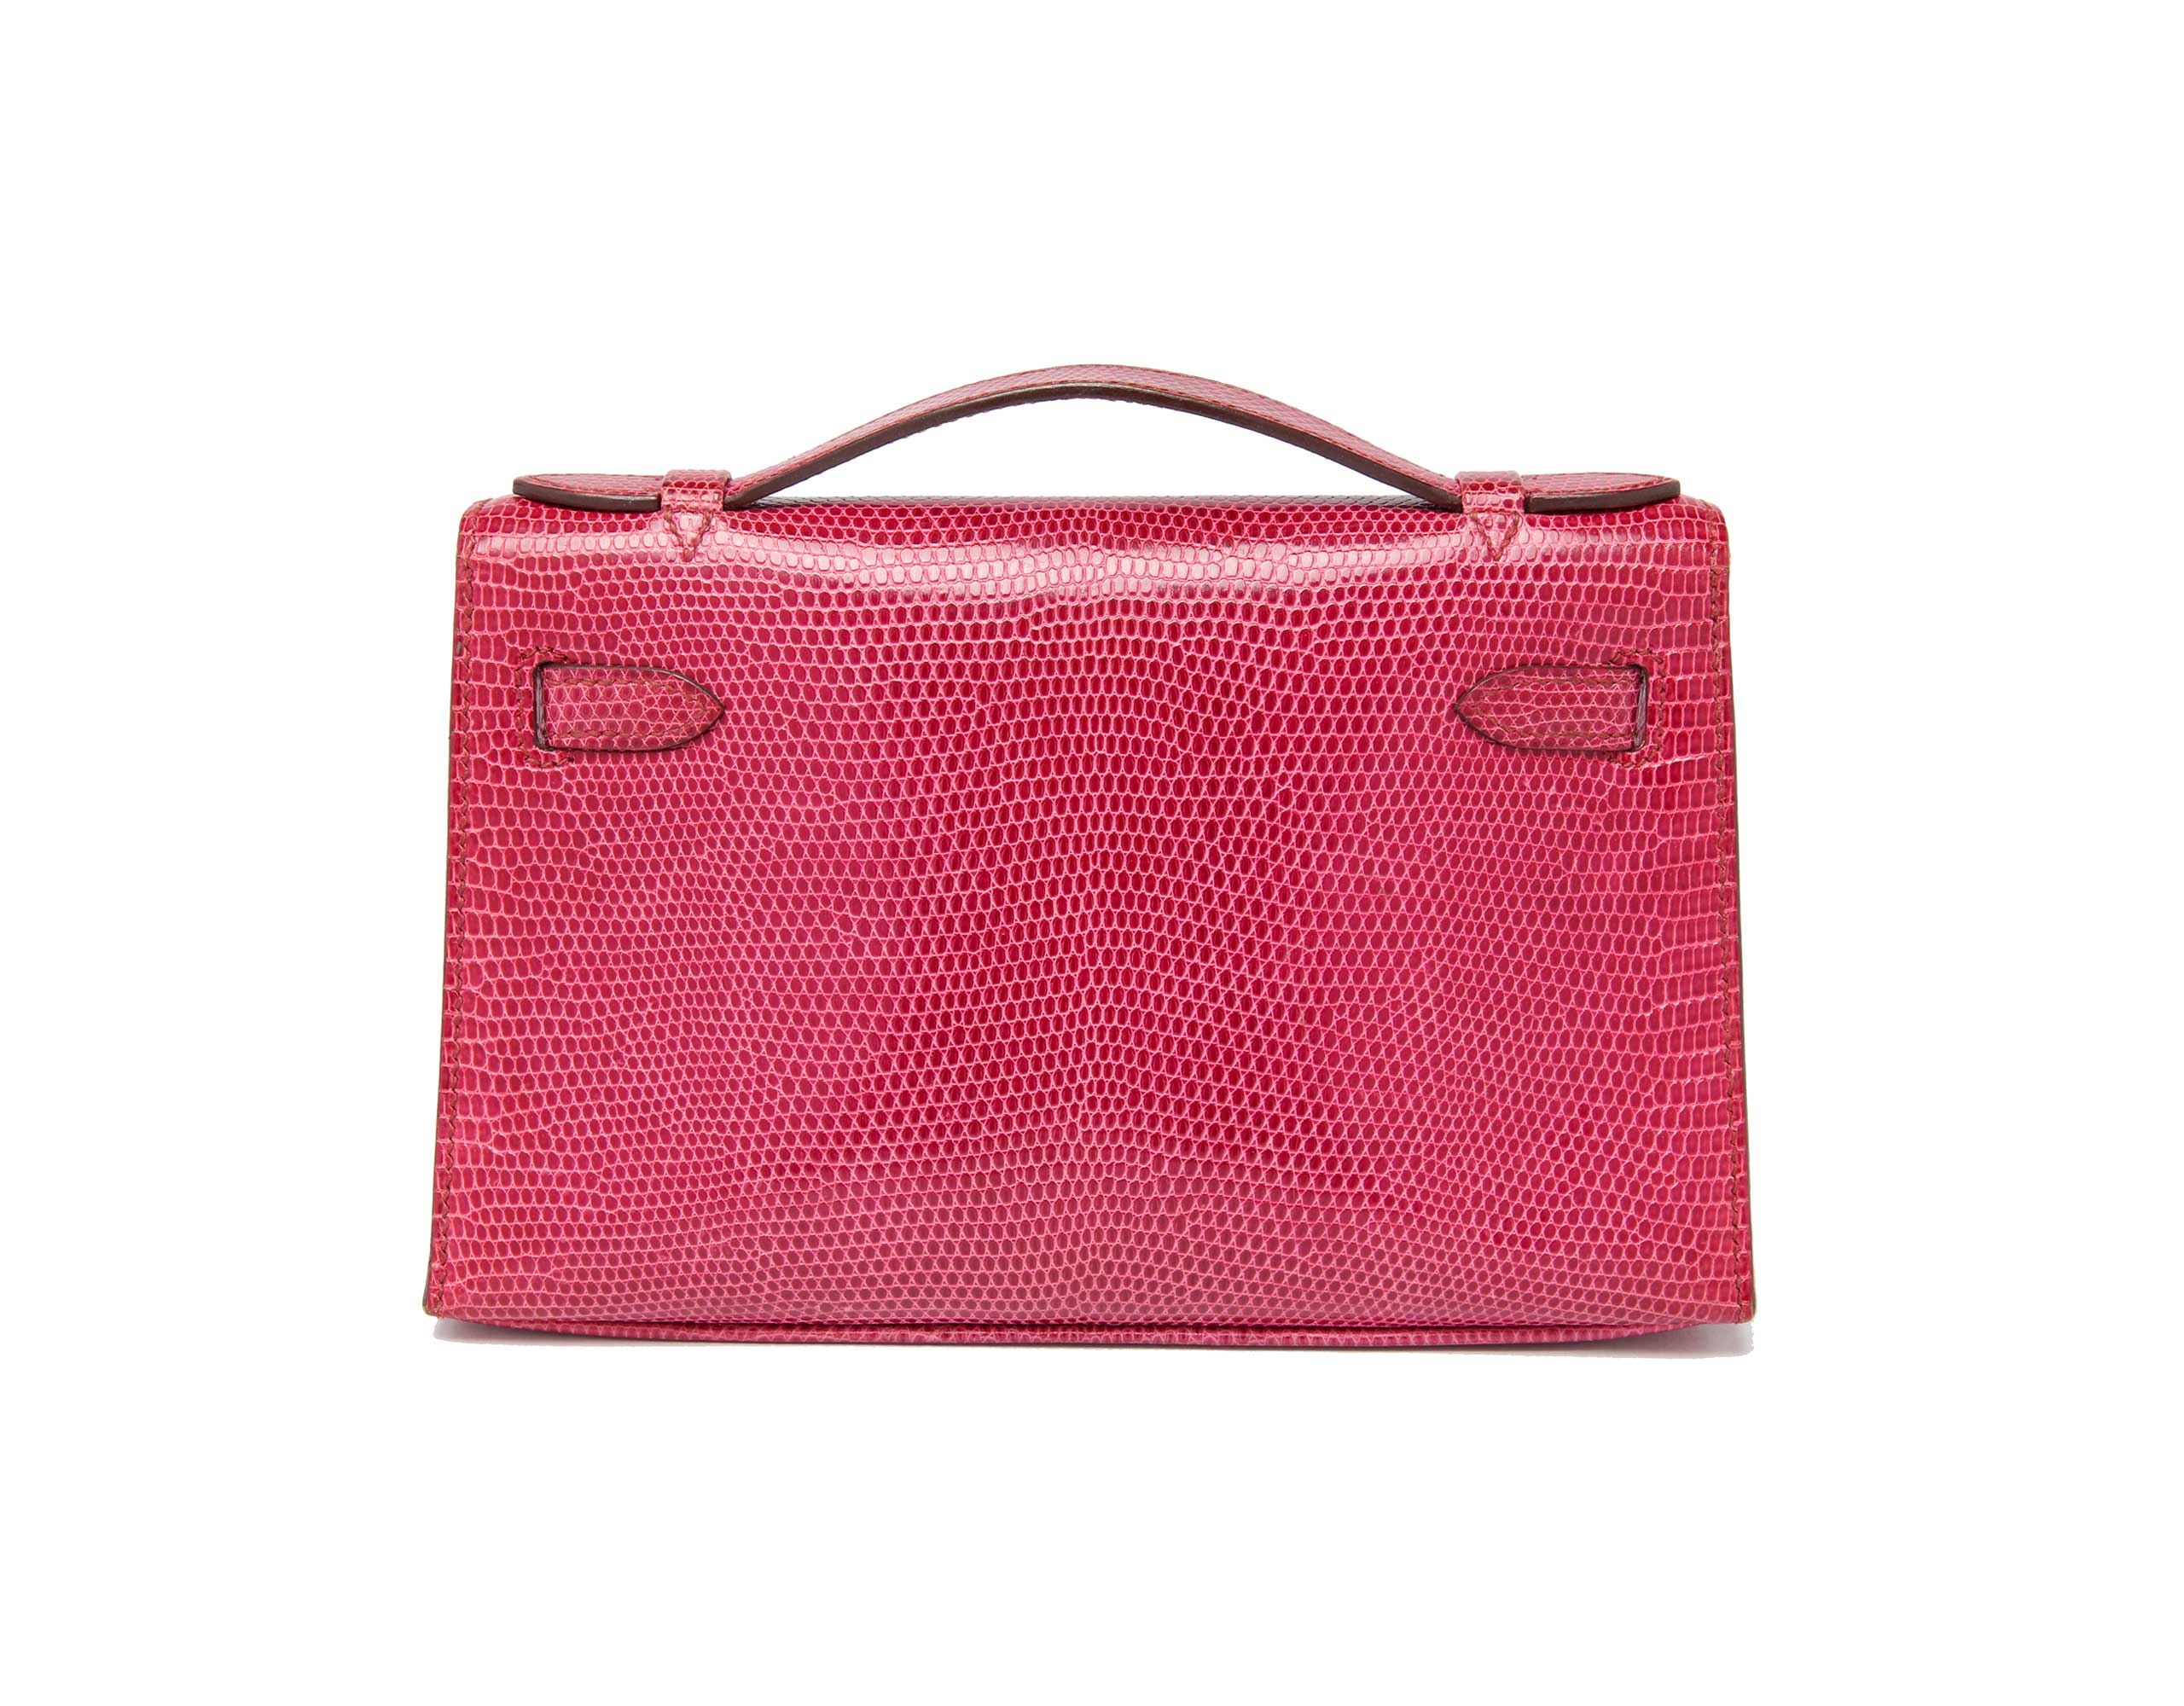 Hermes Kelly Cut Mini Fuschia with Palladium